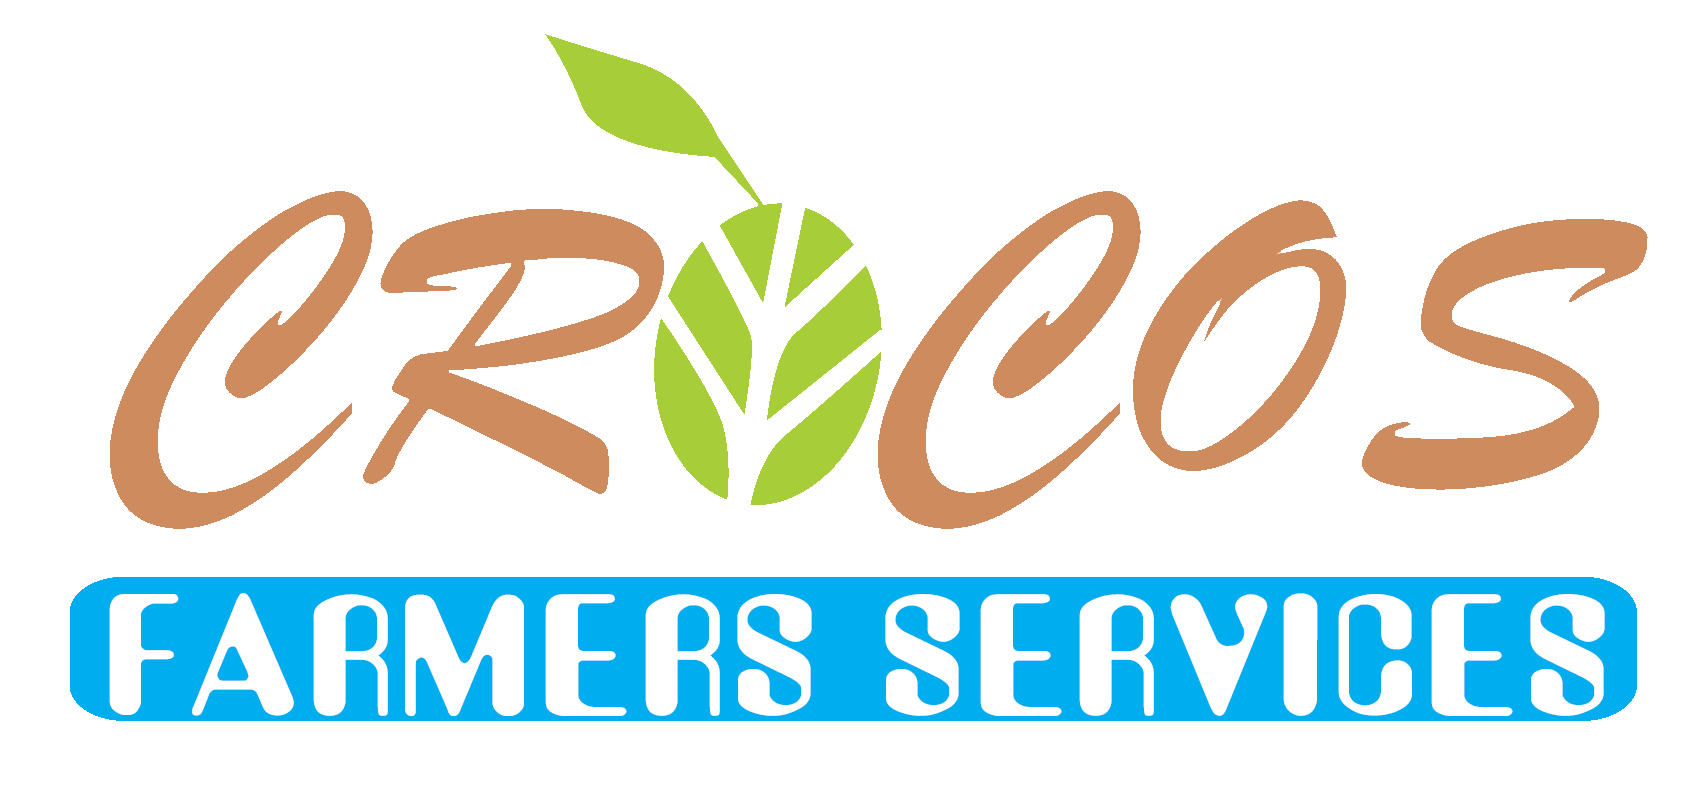 crocos farmers services